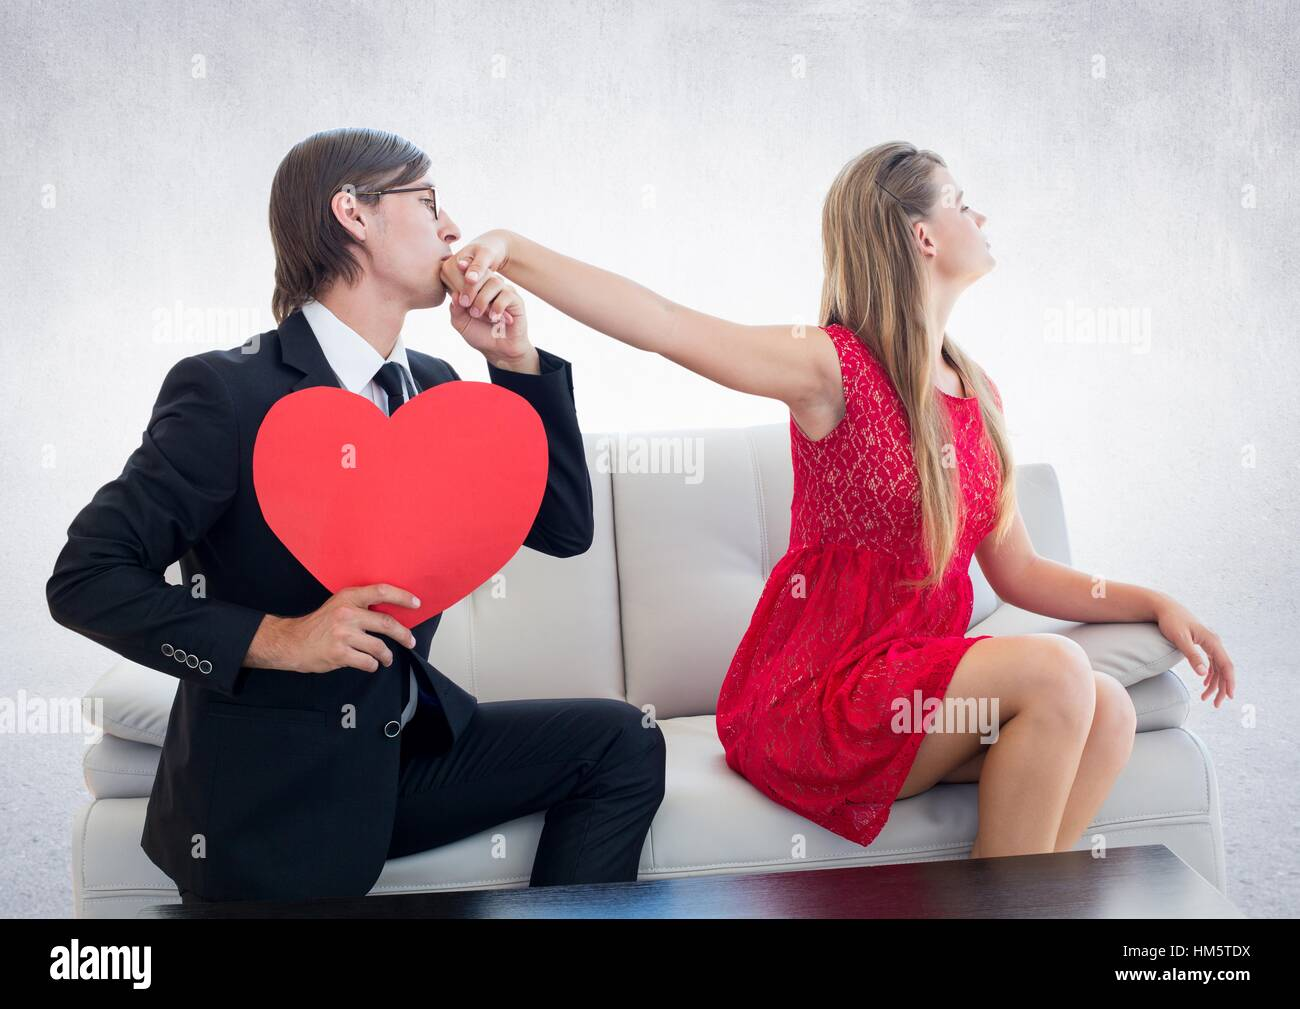 Man with red heart pleasing upset woman - Stock Image